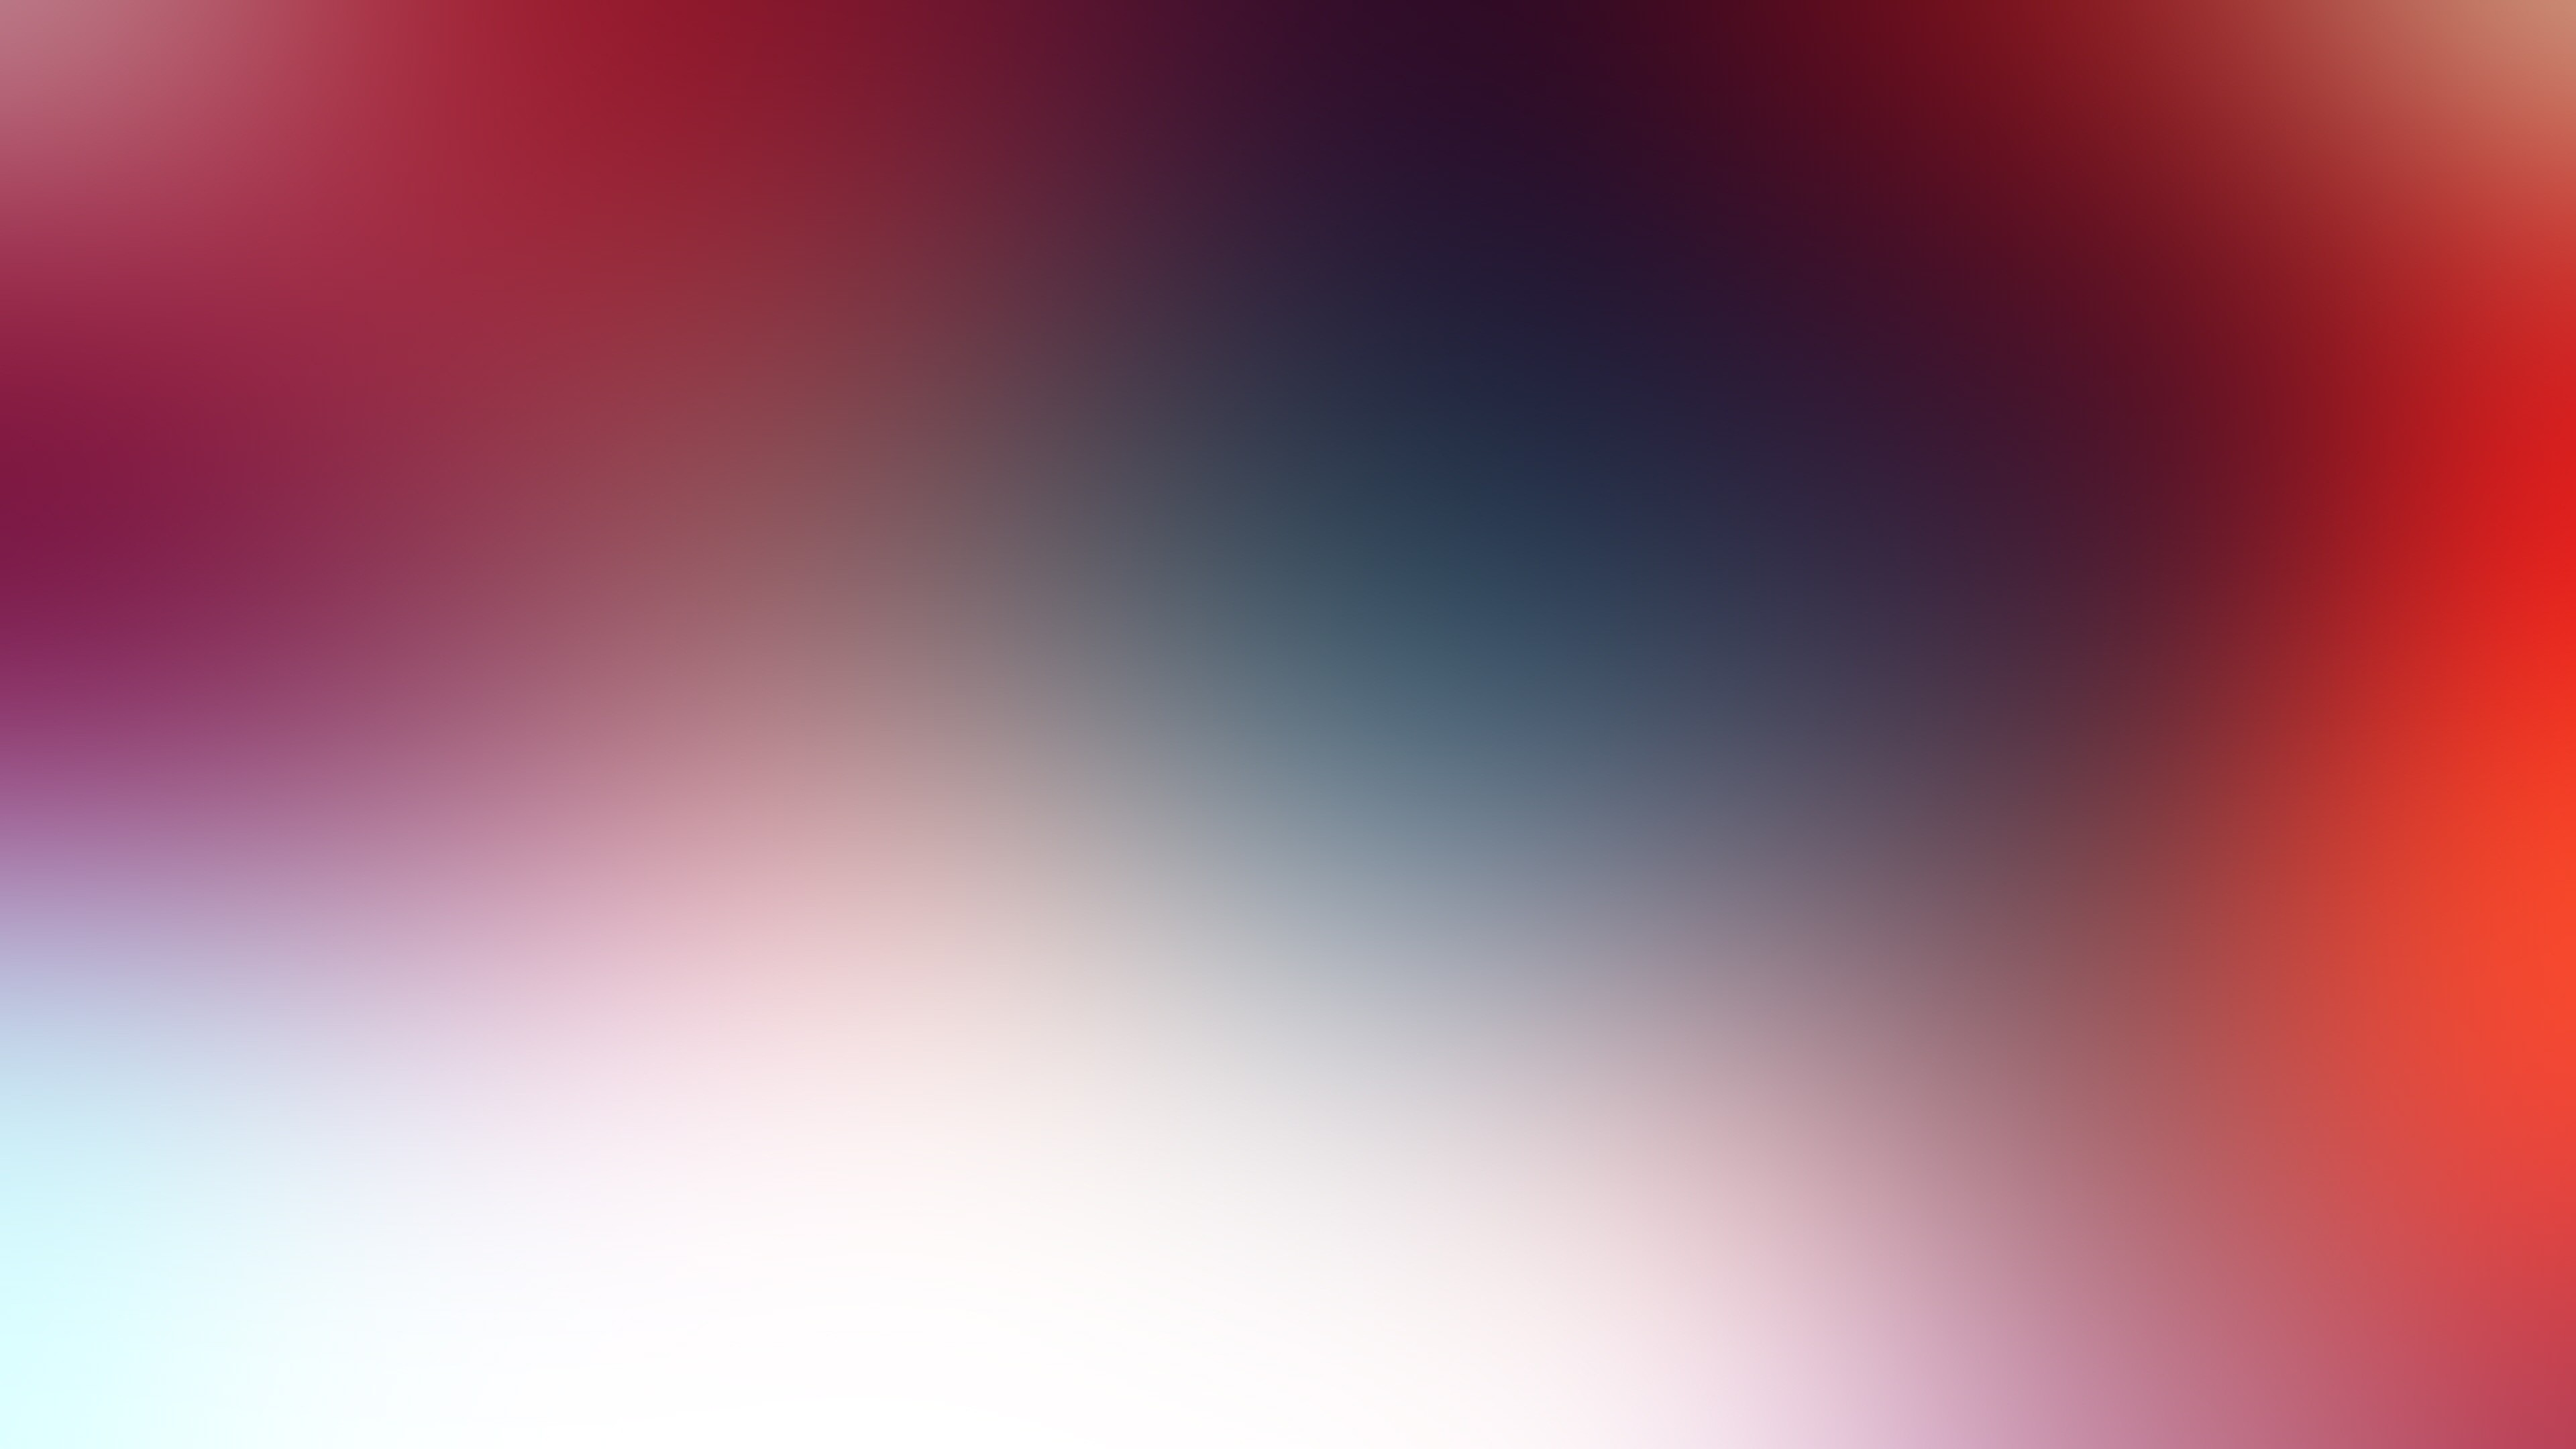 Wallpaper spots, gray, red, blue, abstract